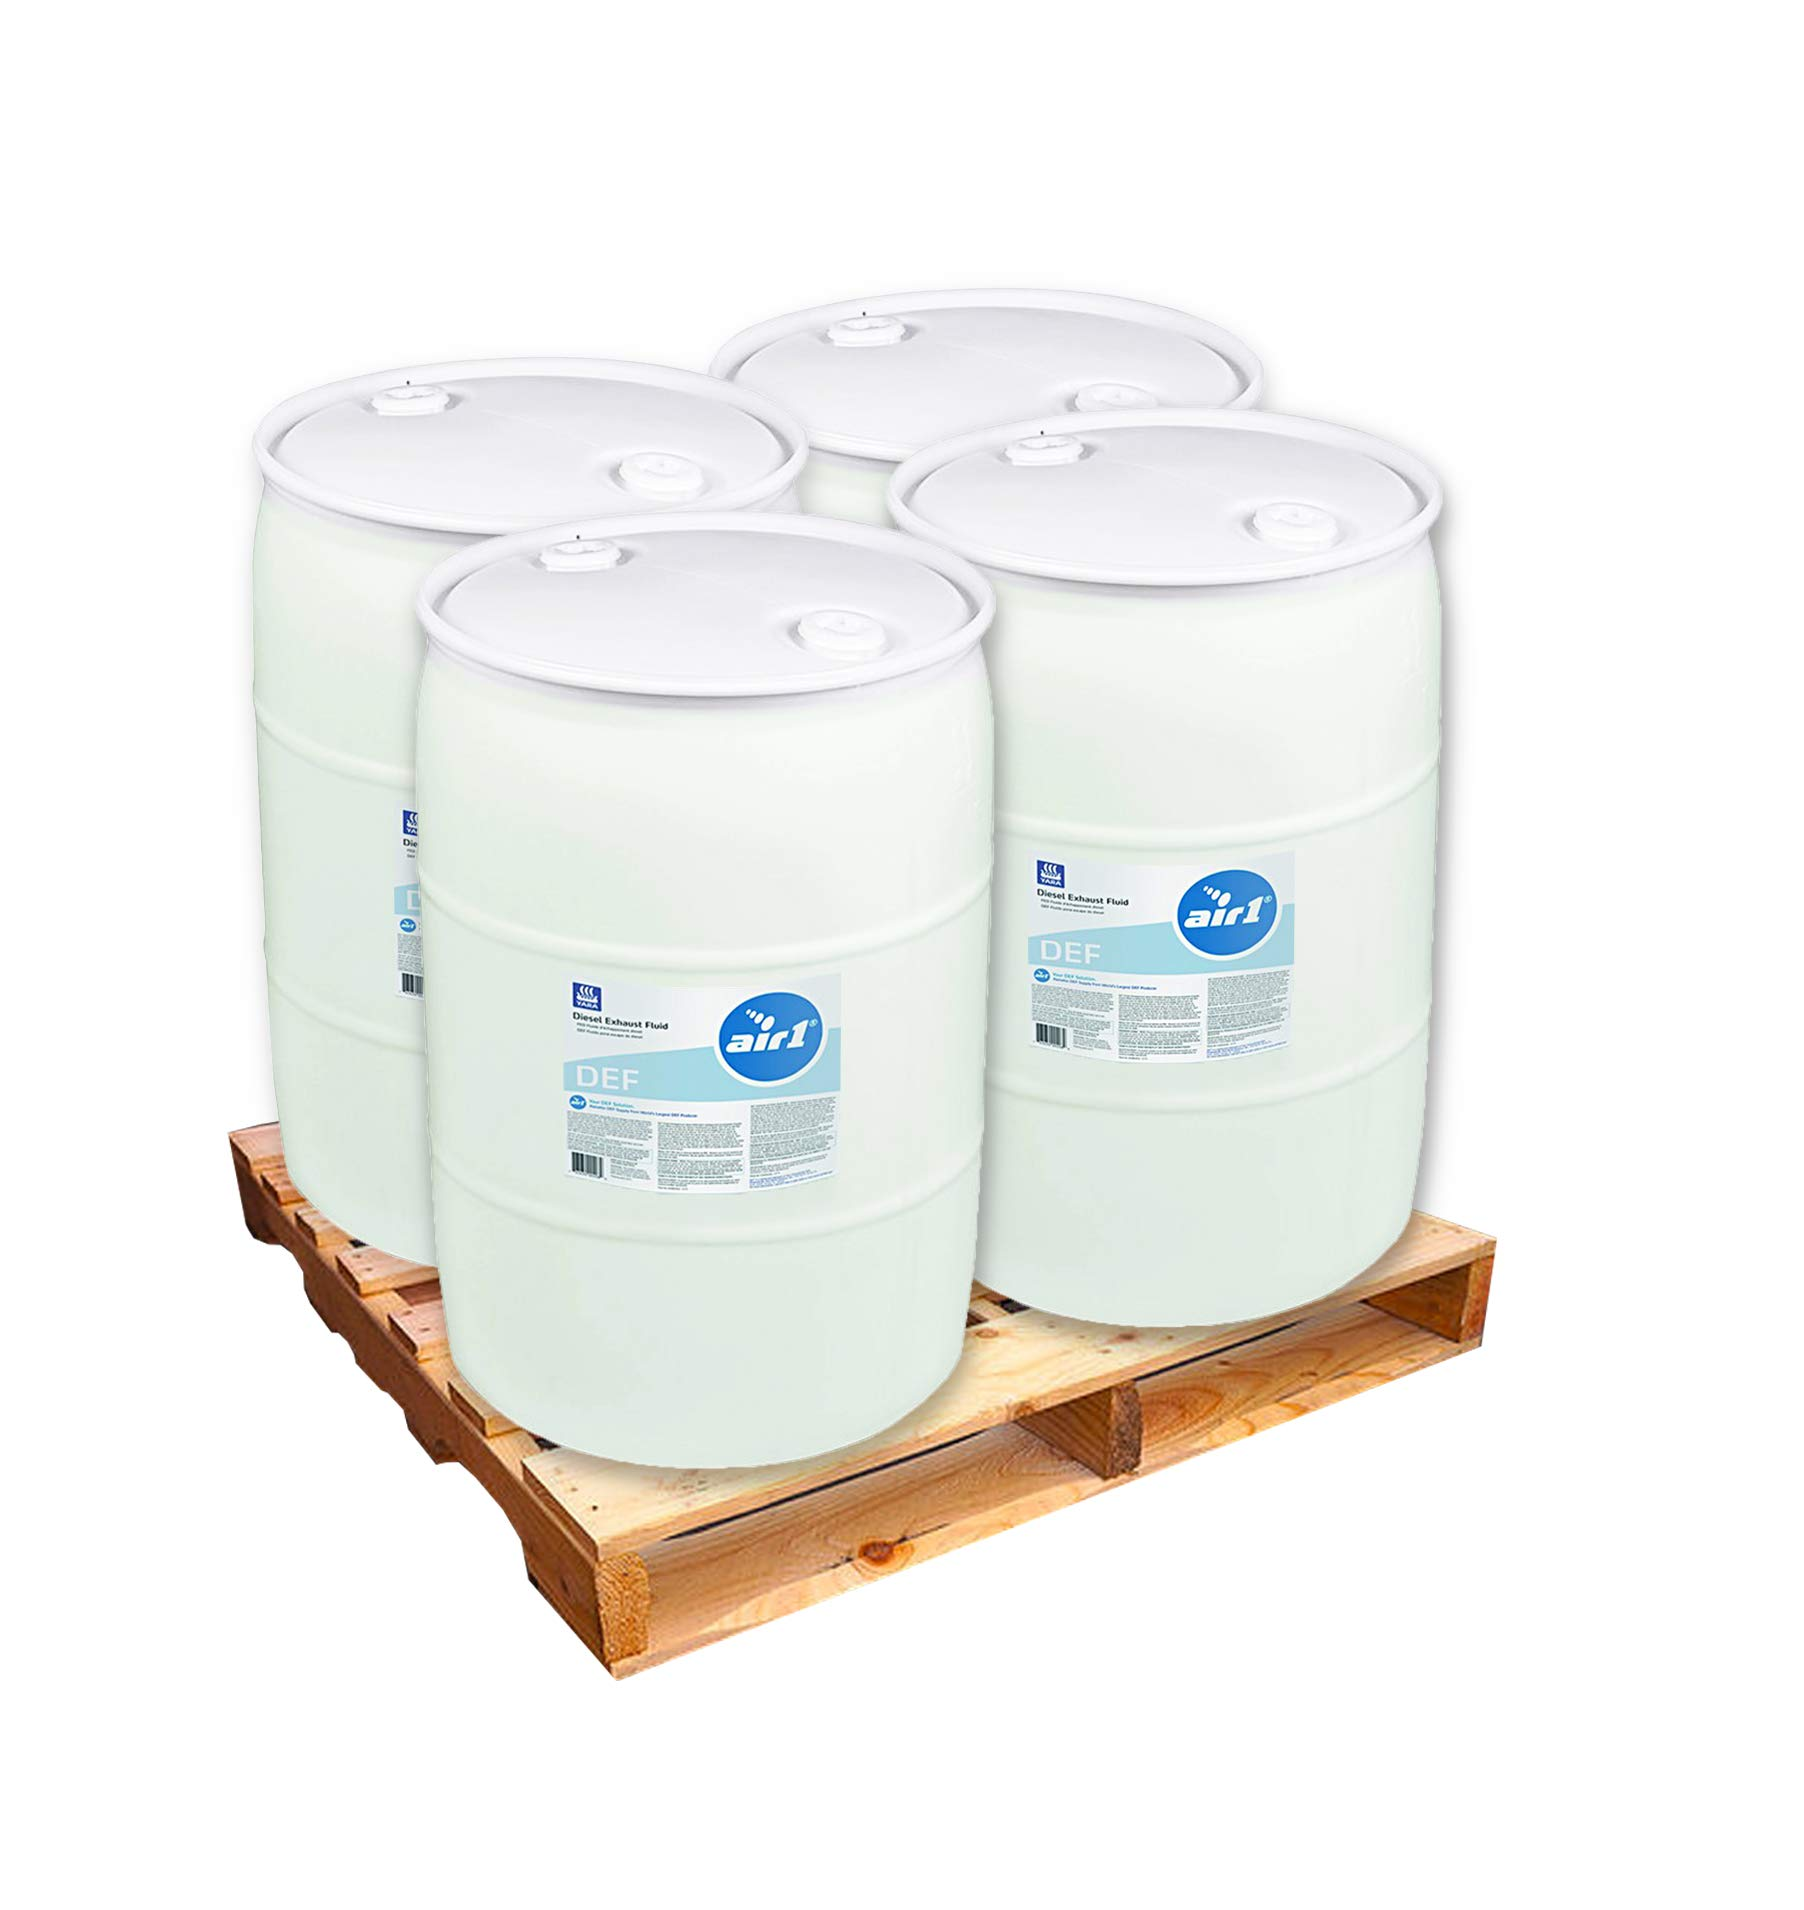 Air 1 Diesel Exhaust Fluid 4 X 55 Gallon Drums by Silver Transfer STS-55NA1 (Lift GATE DEL)